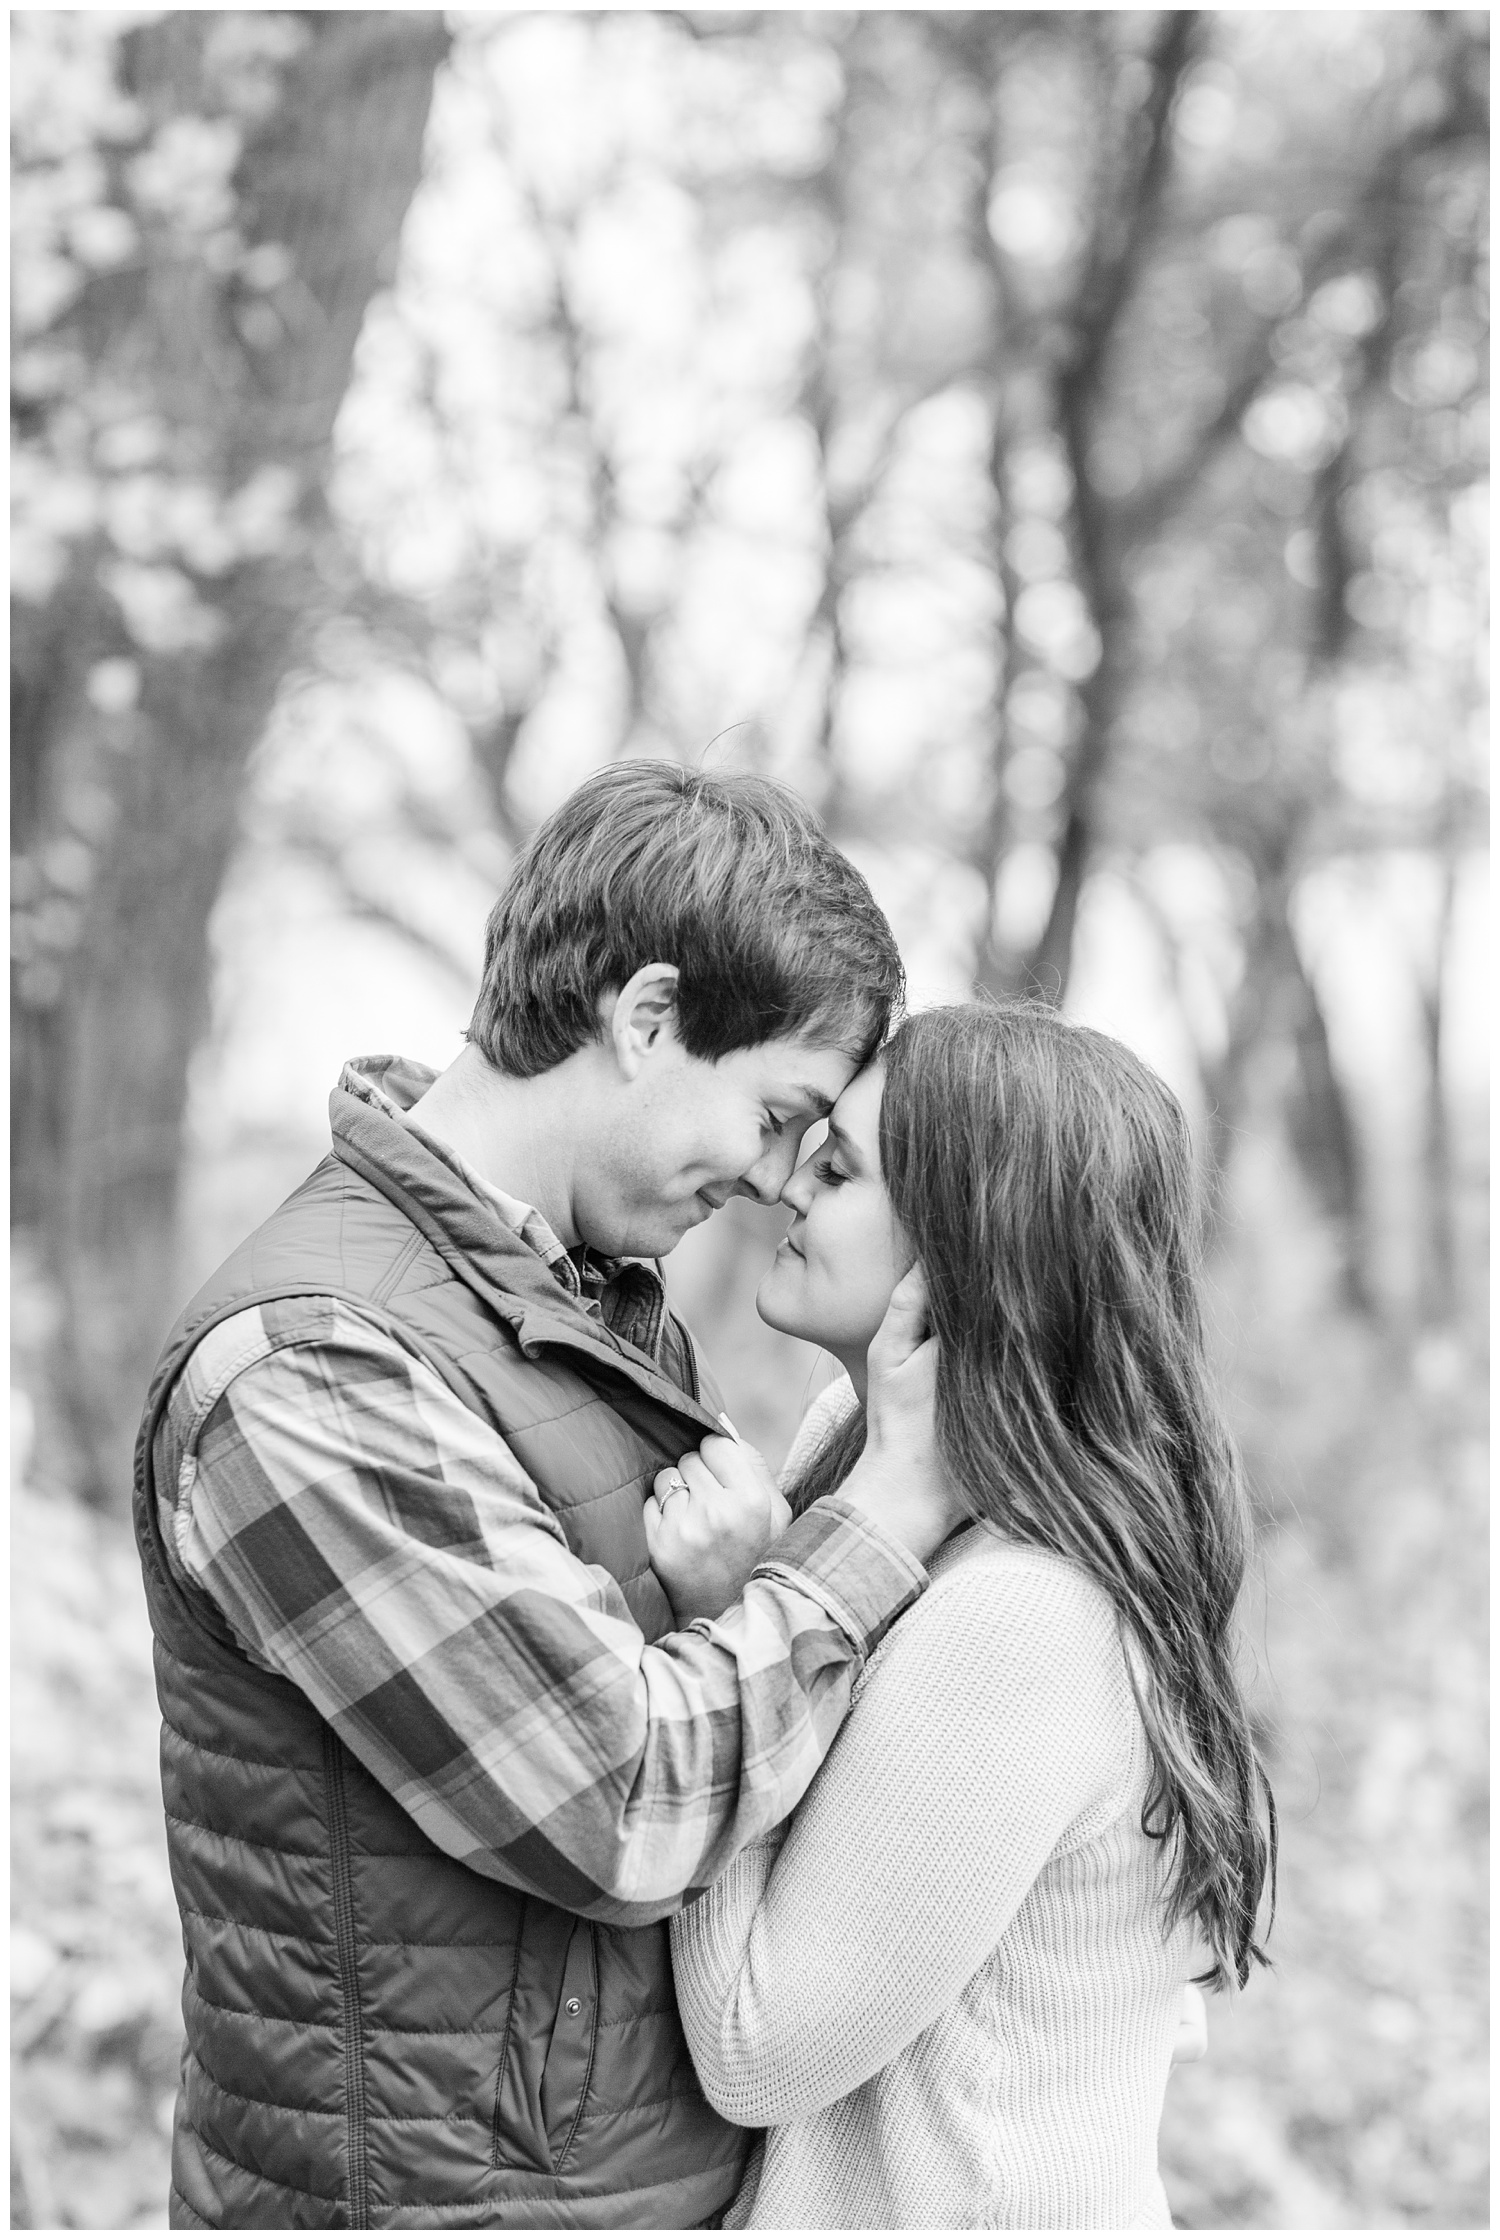 Fall in Iowa, Brady slowly pulls Jenna in for a kiss in the middle of an autumn path at Lost Island Nature Center | CB Studio